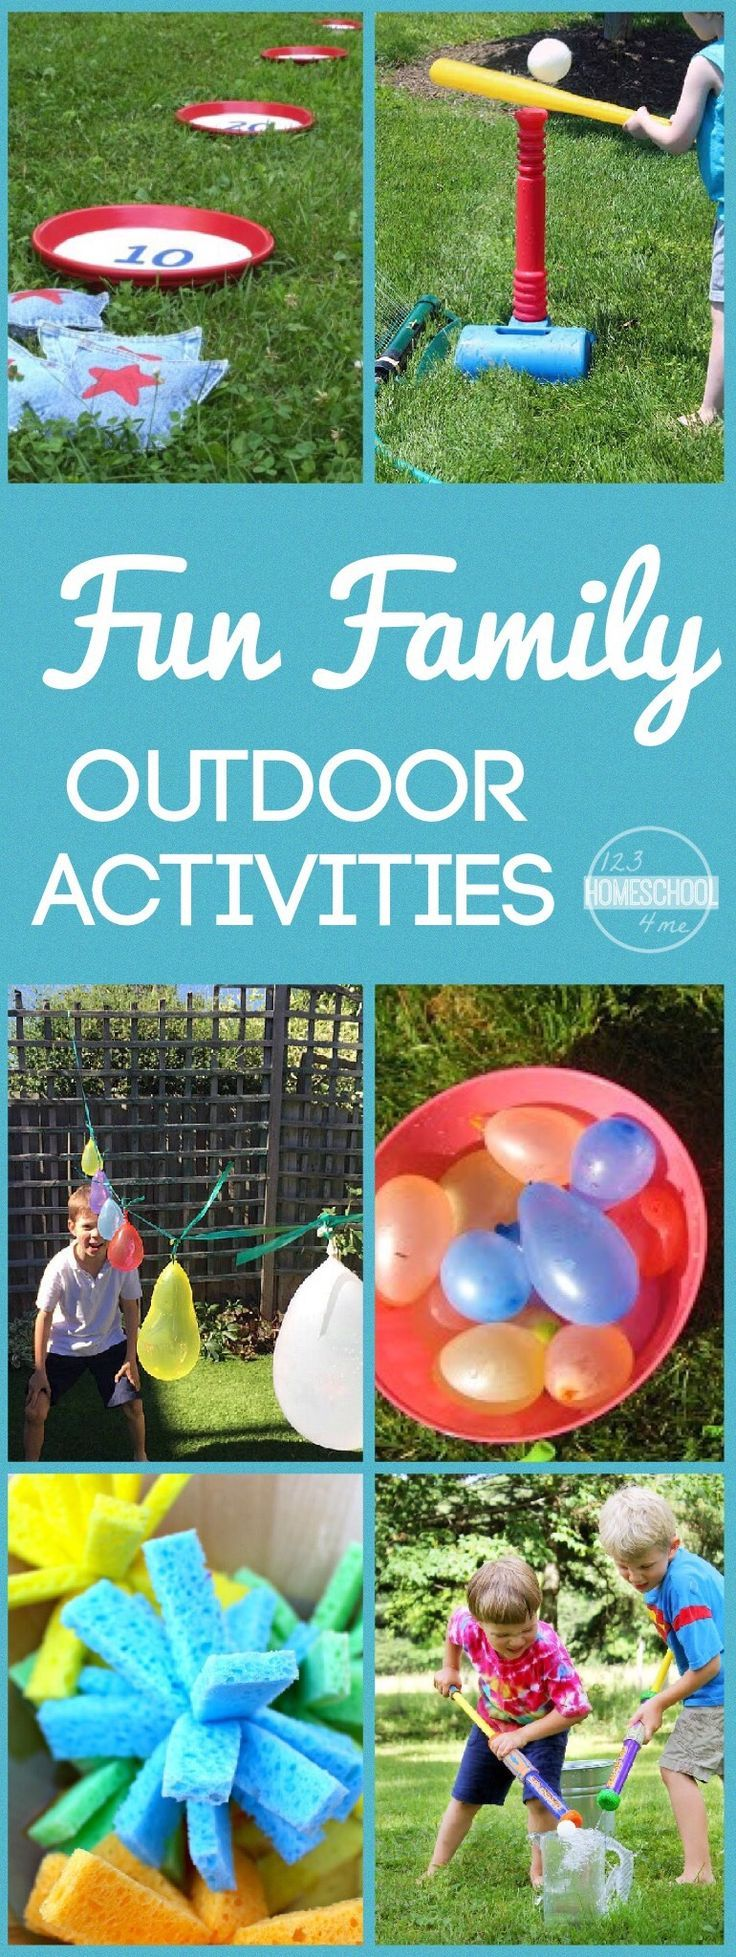 FUN Family Outdoor Activities - so many fun, unique ideas for water games, outdoor activities for families, and more!! (summer bucket list) (scheduled via http://www.tailwindapp.com?utm_source=pinterest&utm_medium=twpin&utm_content=post175956843&utm_campaign=scheduler_attribution)